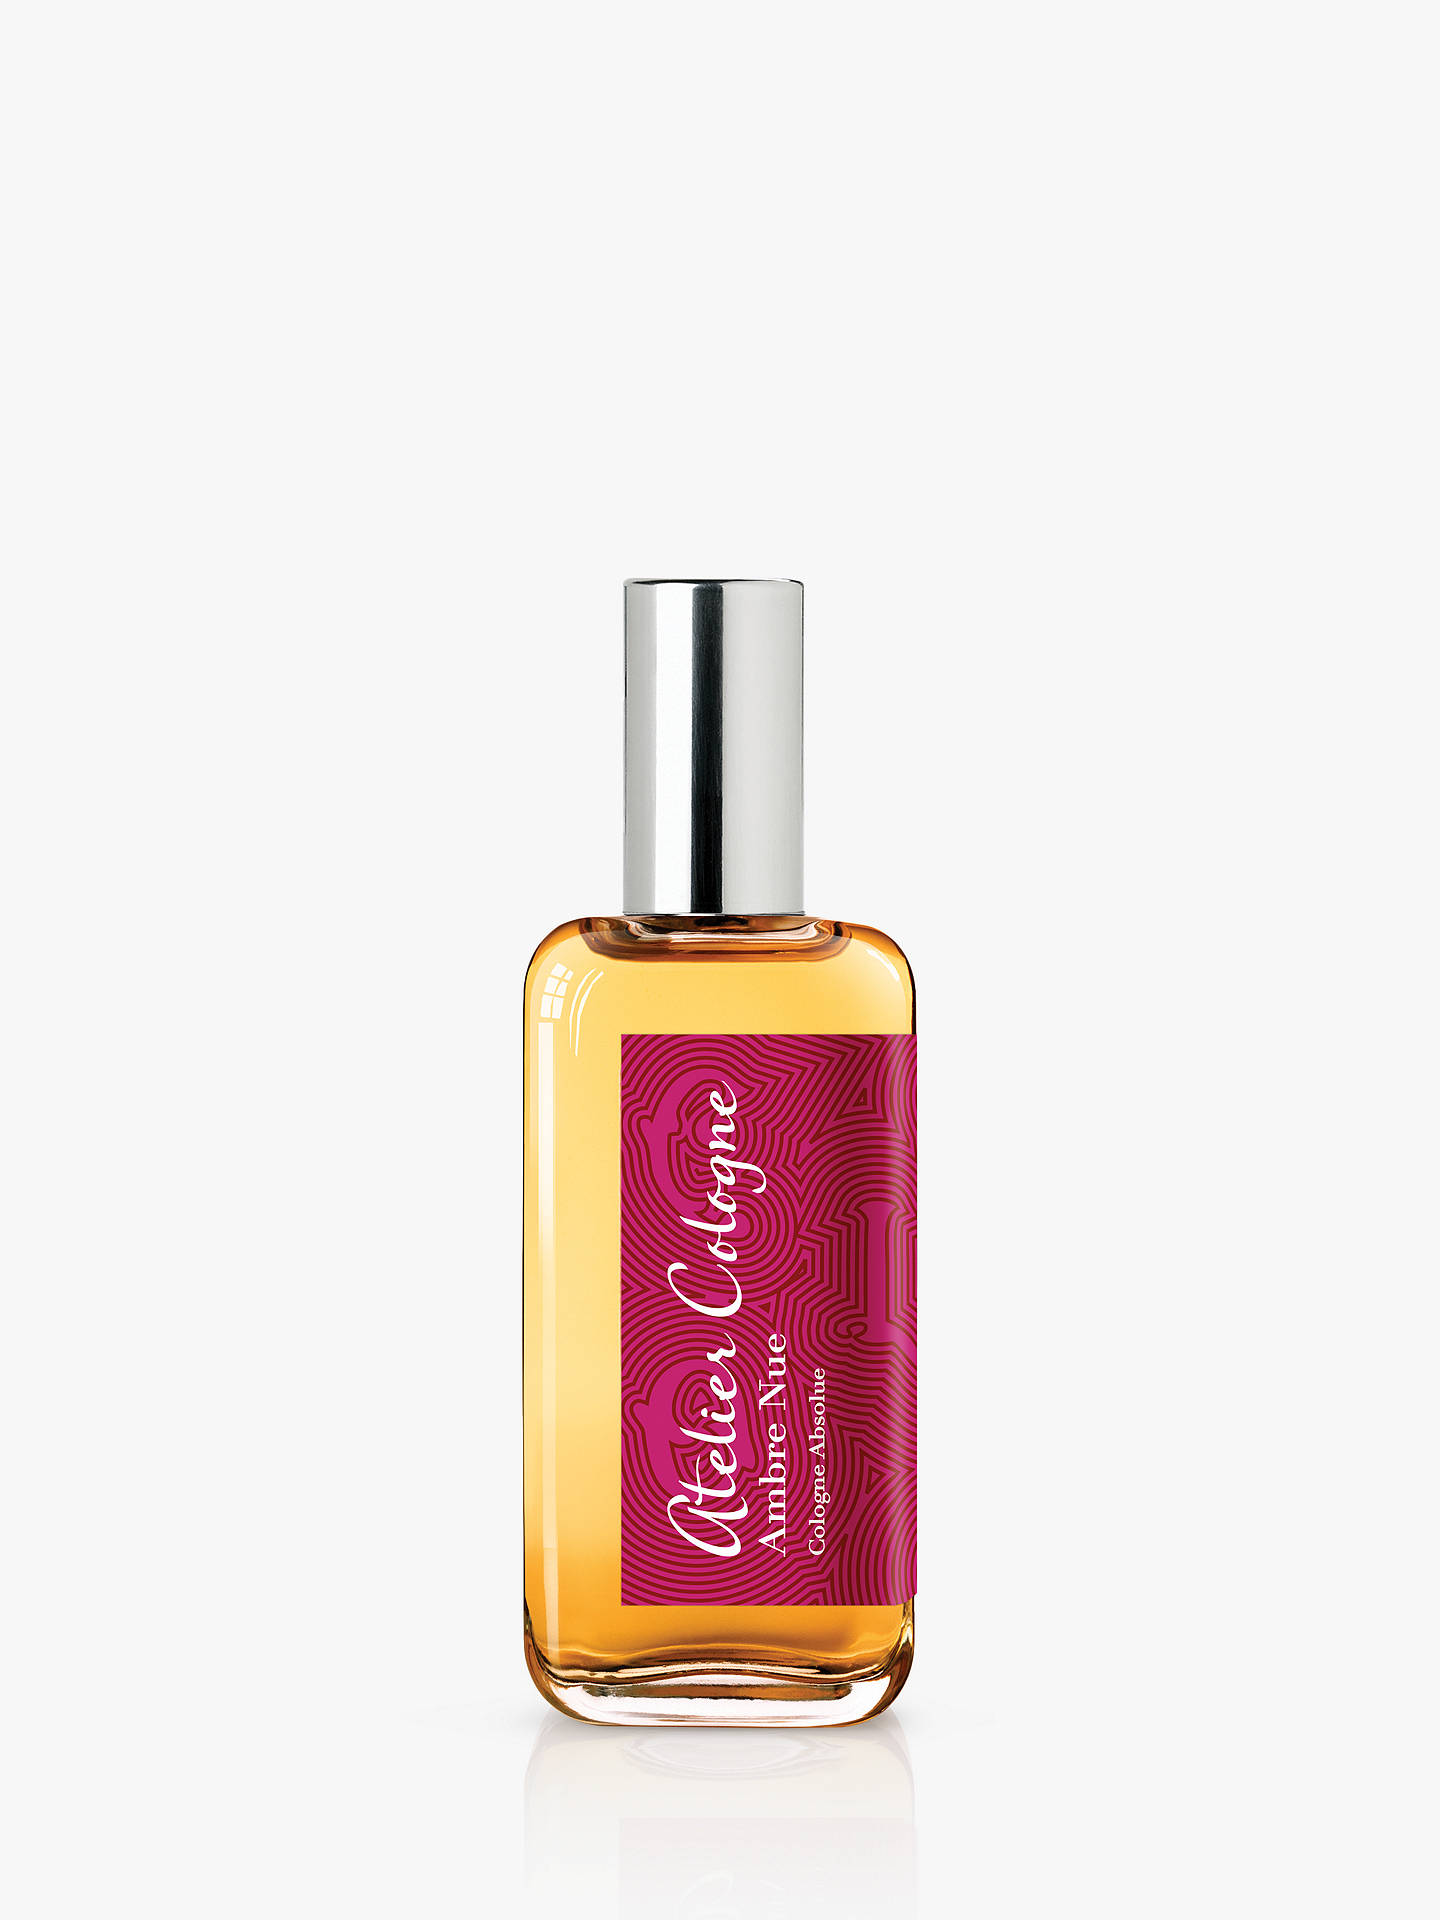 Buy Atelier Cologne Ambre Nue Cologne Absolue, 30ml Online at johnlewis.com